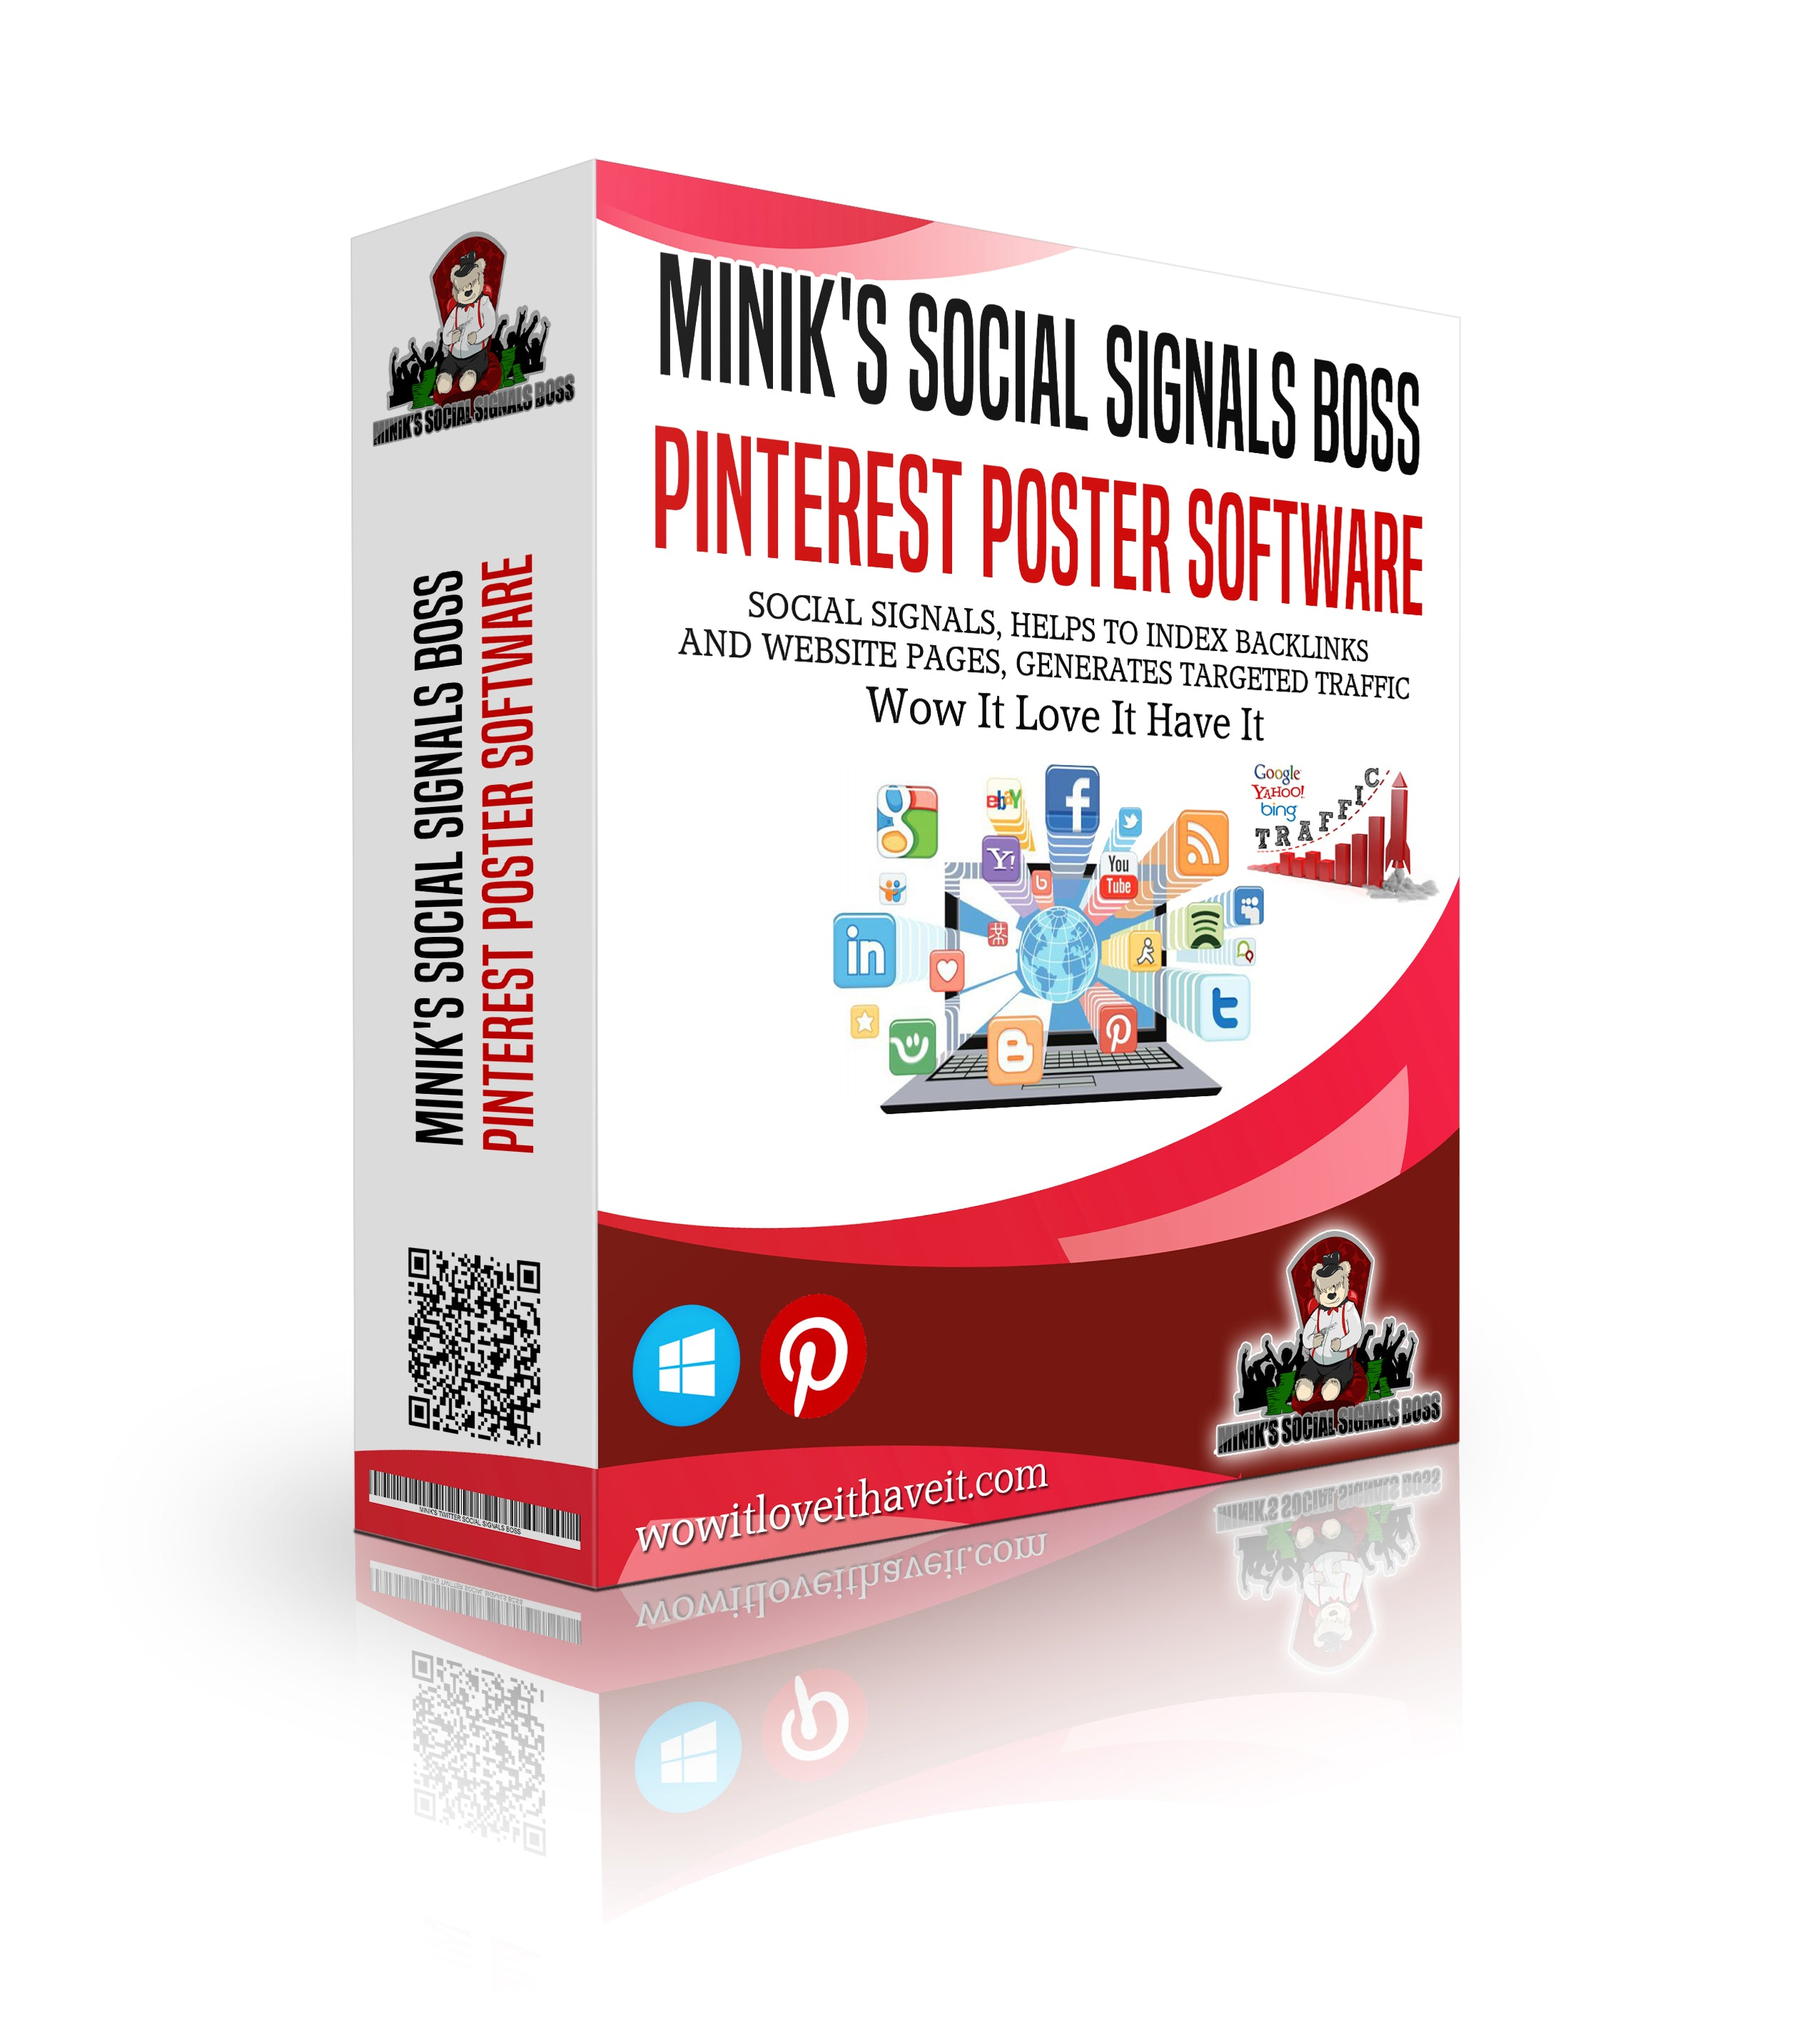 Boost Your Website Traffic with Minik's Social Signals Boss Pinterest